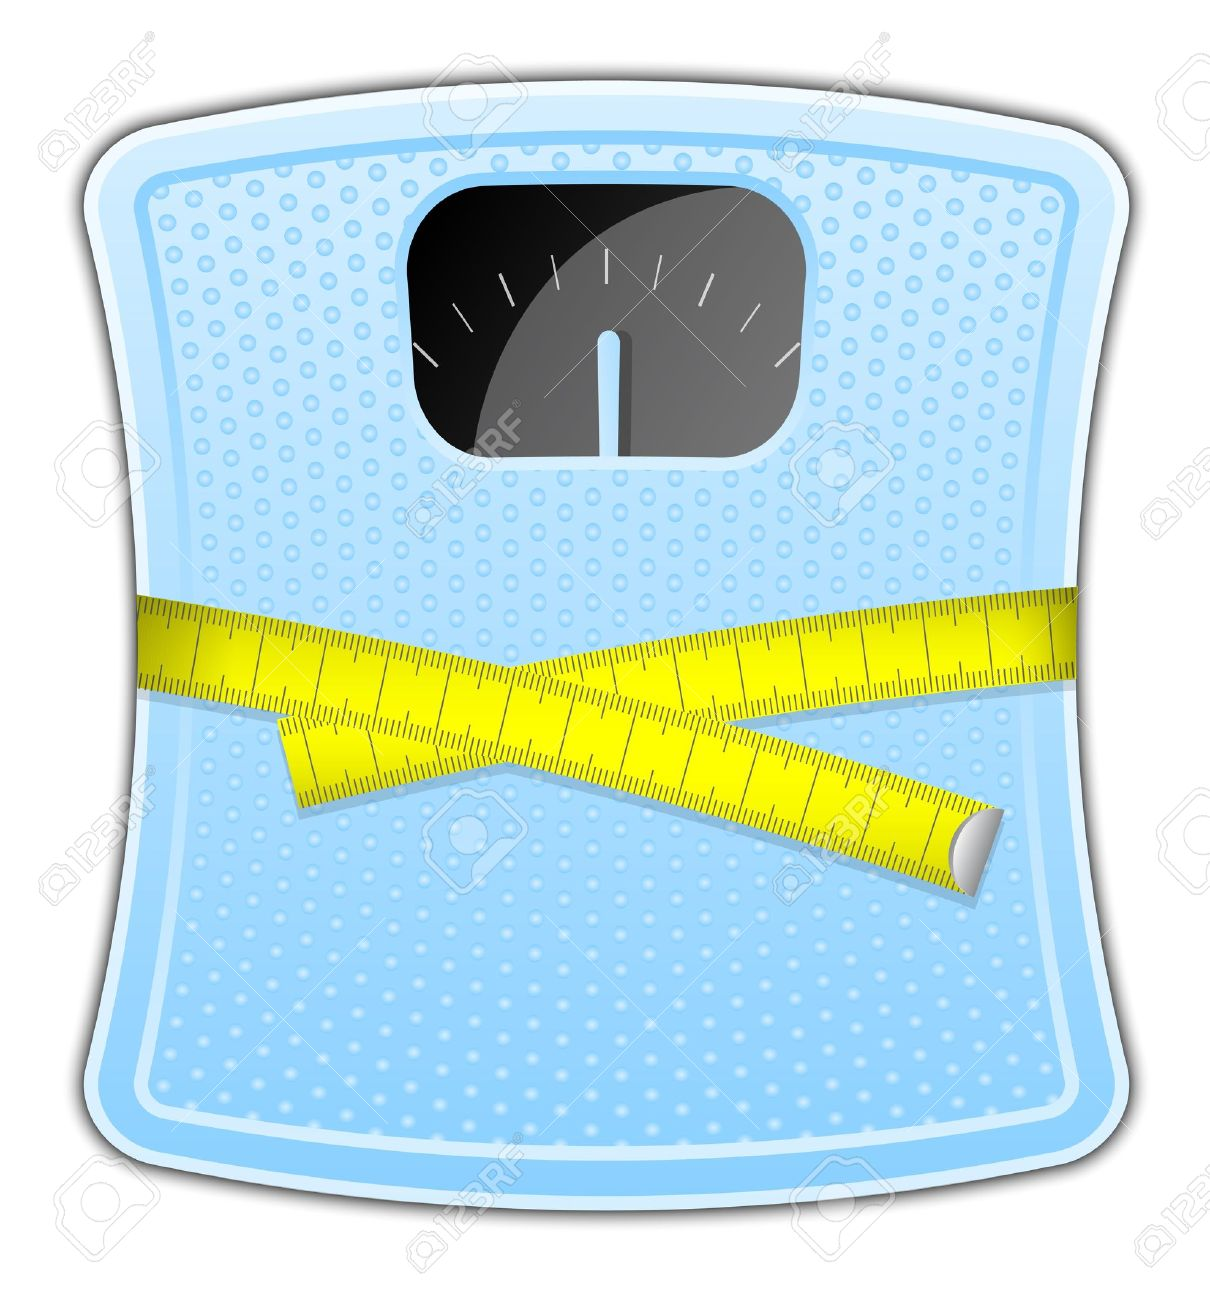 Vector Illustration Of Blue Bathroom Scale With Measuring Tape.